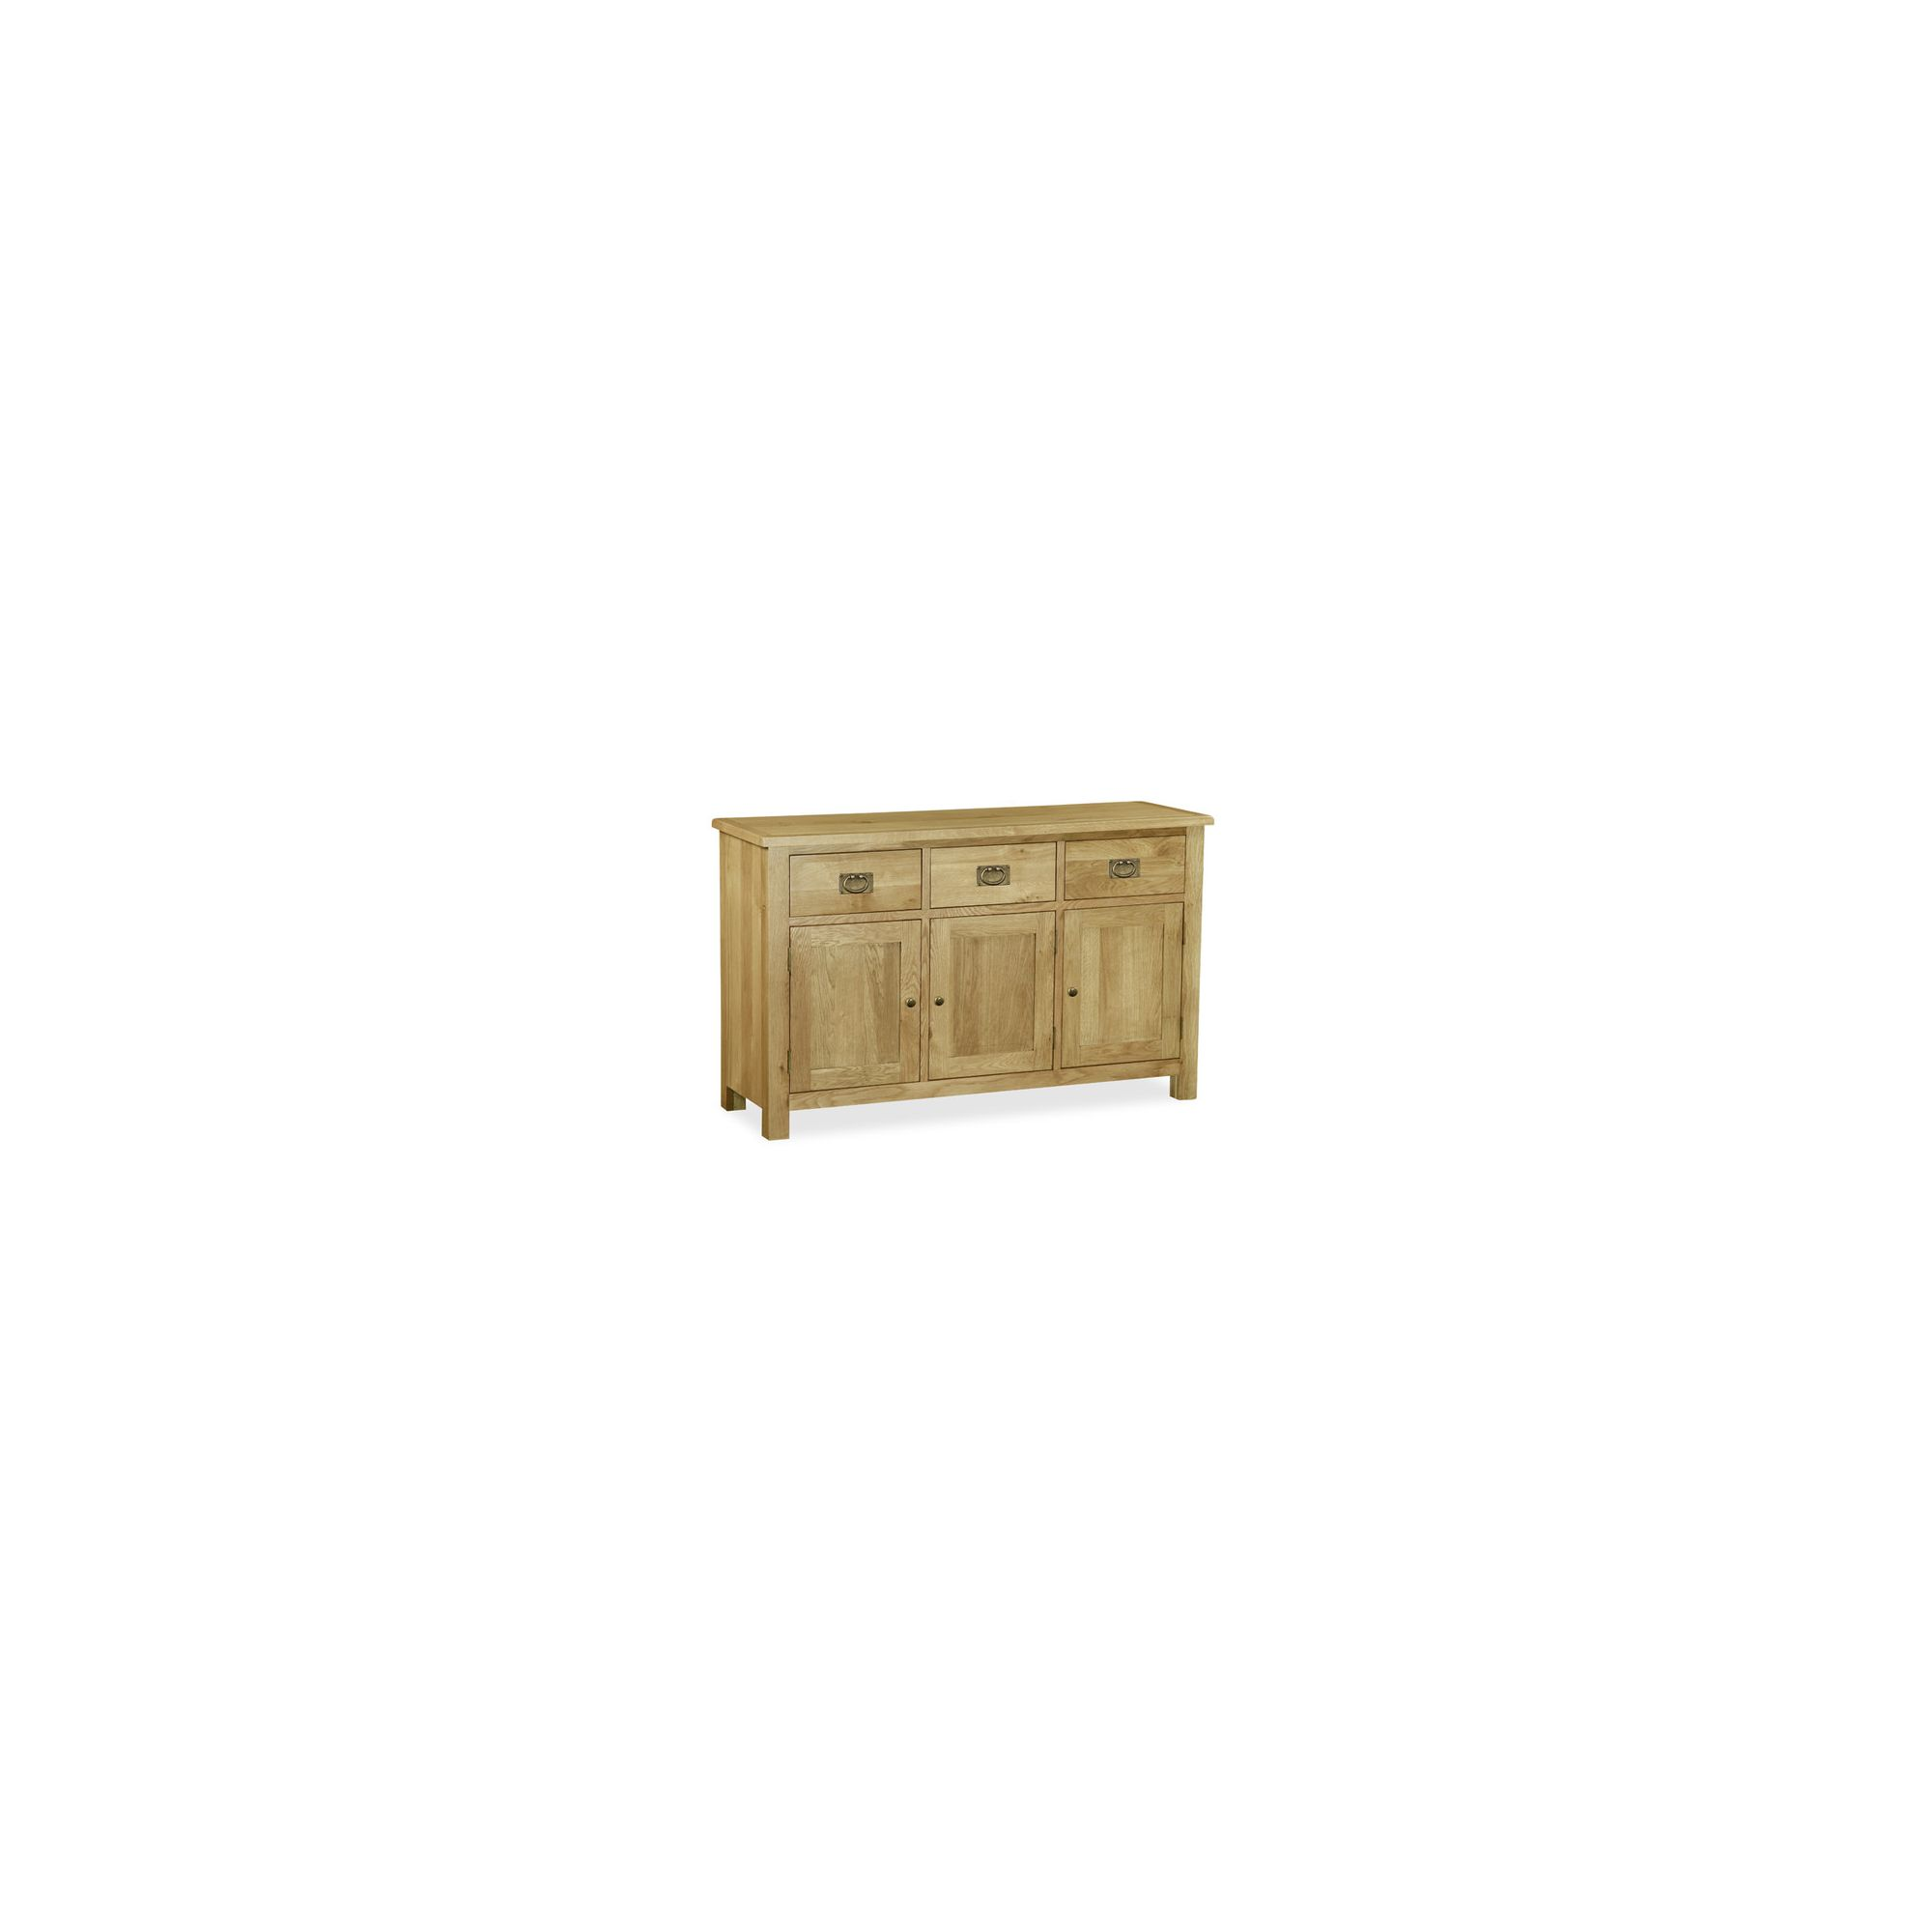 Alterton Furniture Pemberley Petite Sideboard at Tesco Direct